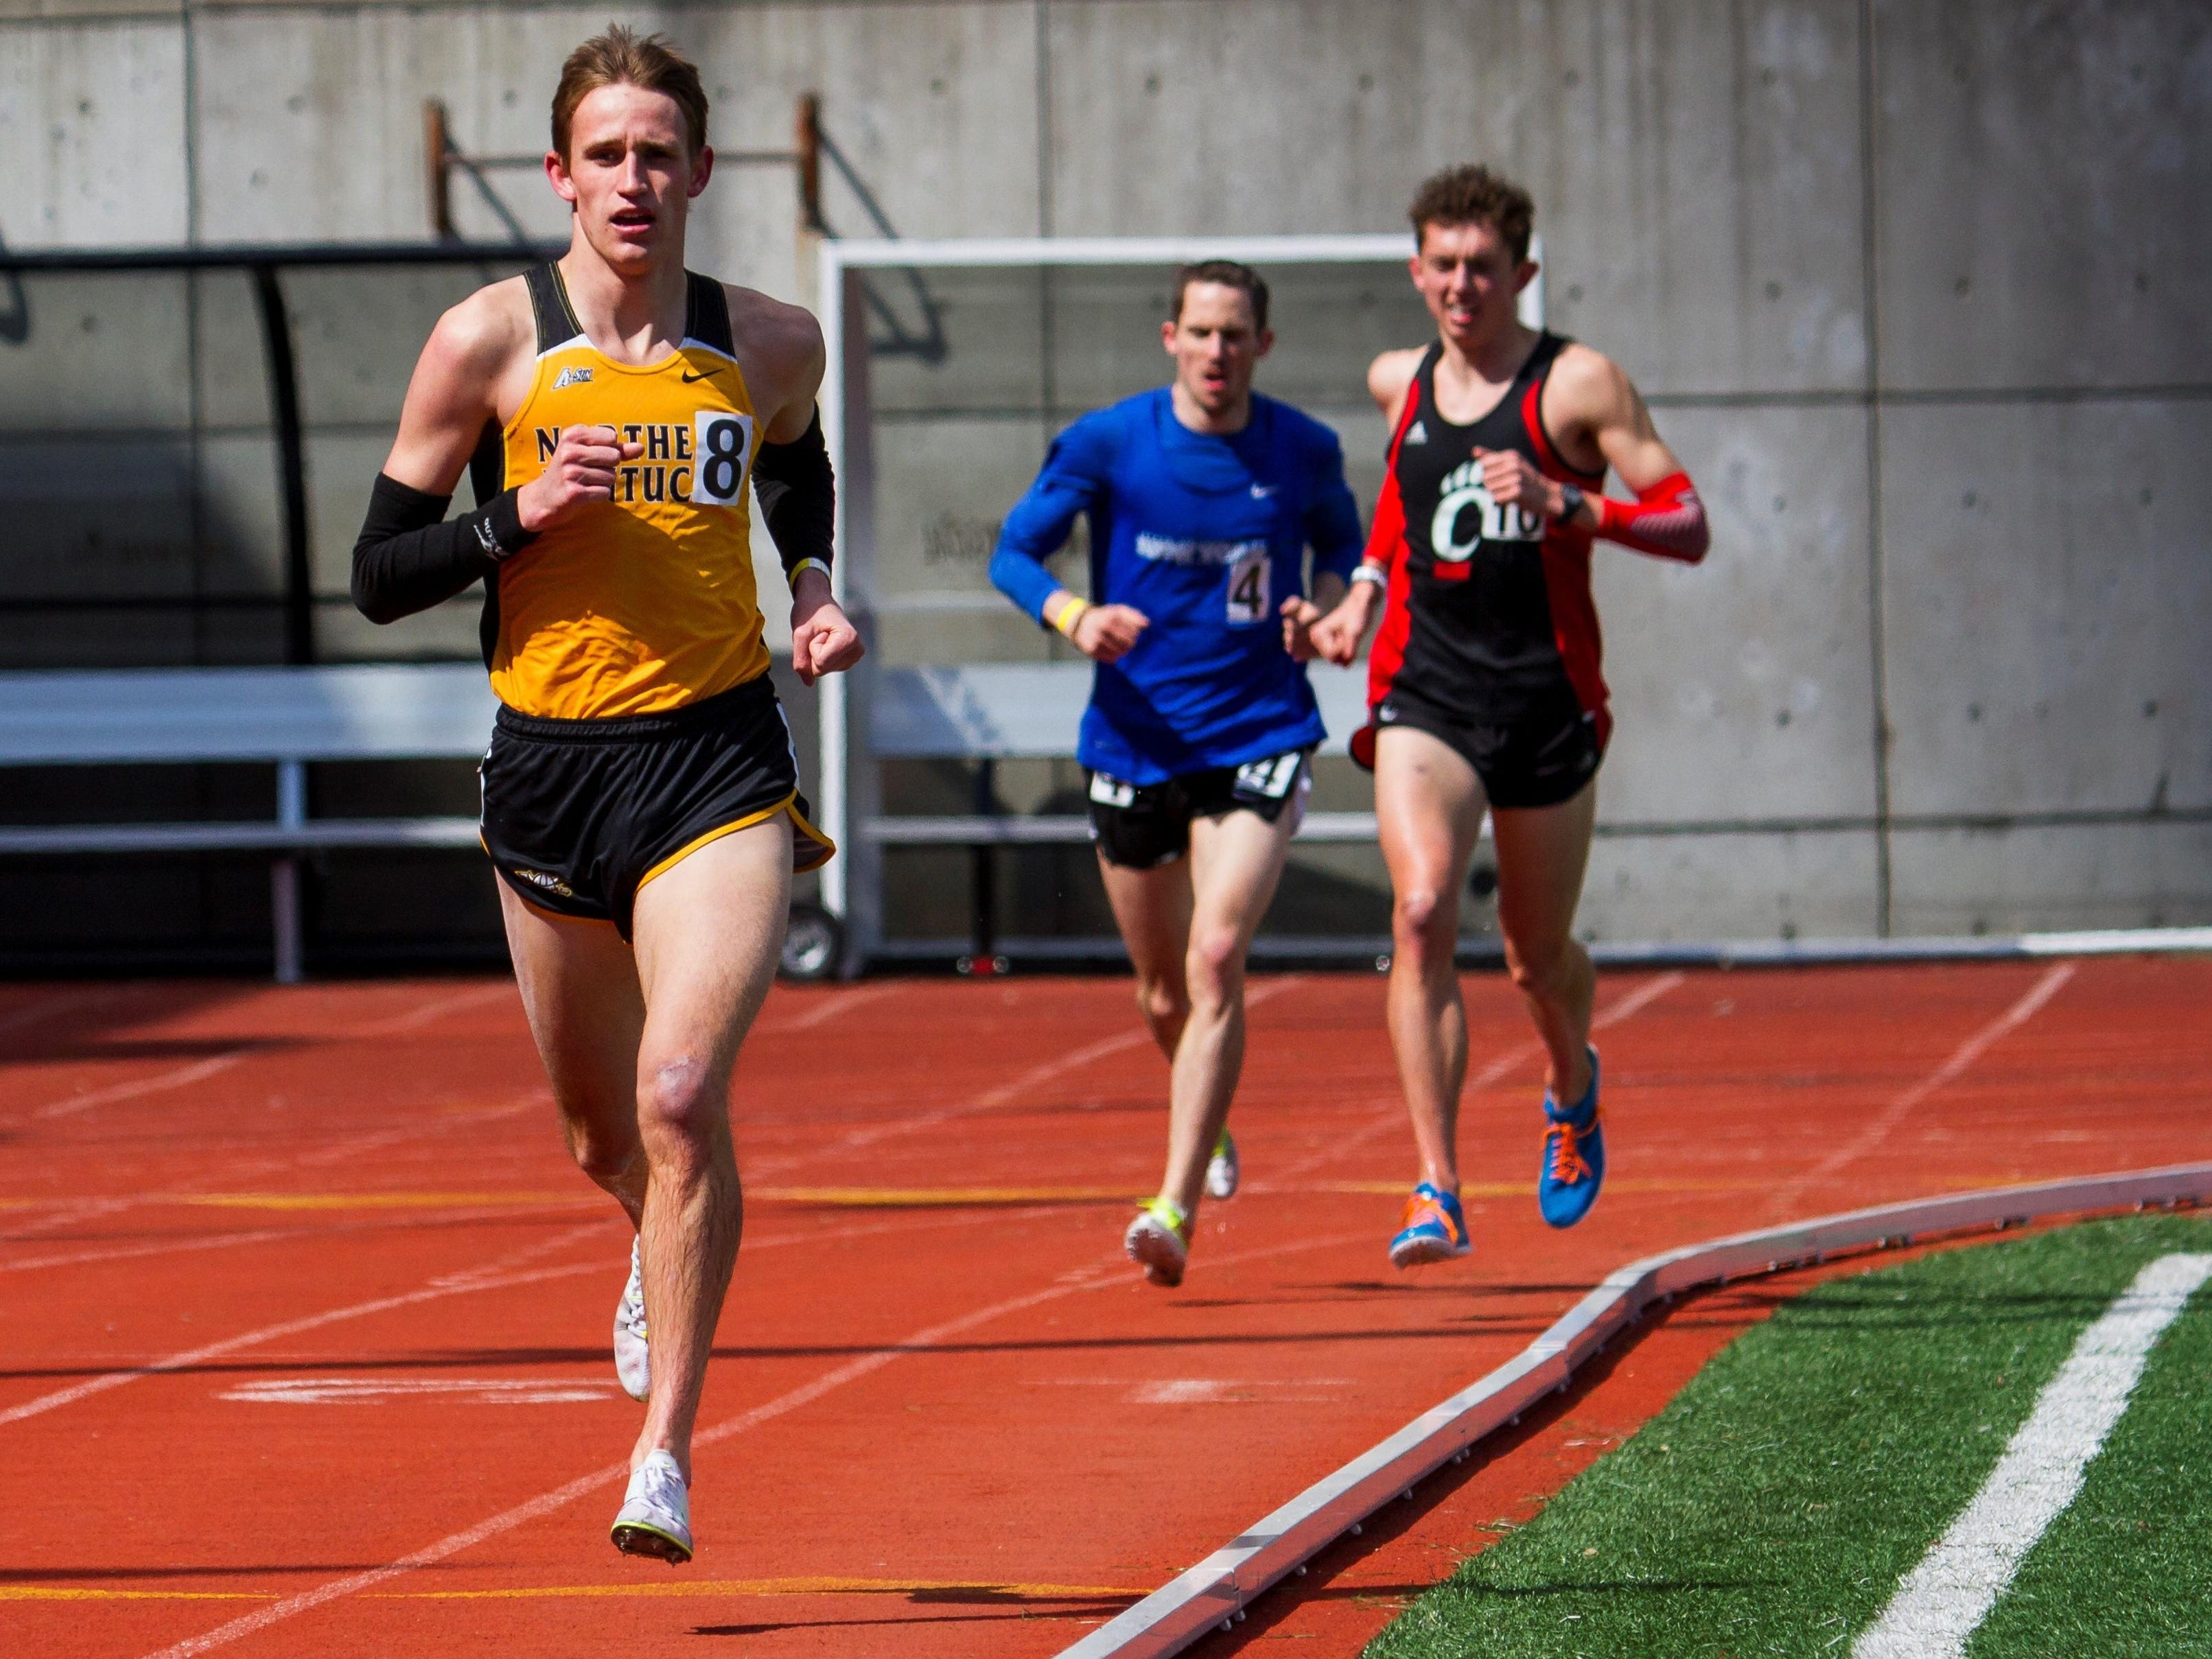 John Michael Griffith, a 2014 Highlands High School graduate, became the first Norse athlete to qualify for USA Track and Field Junior Outdoor Championships.